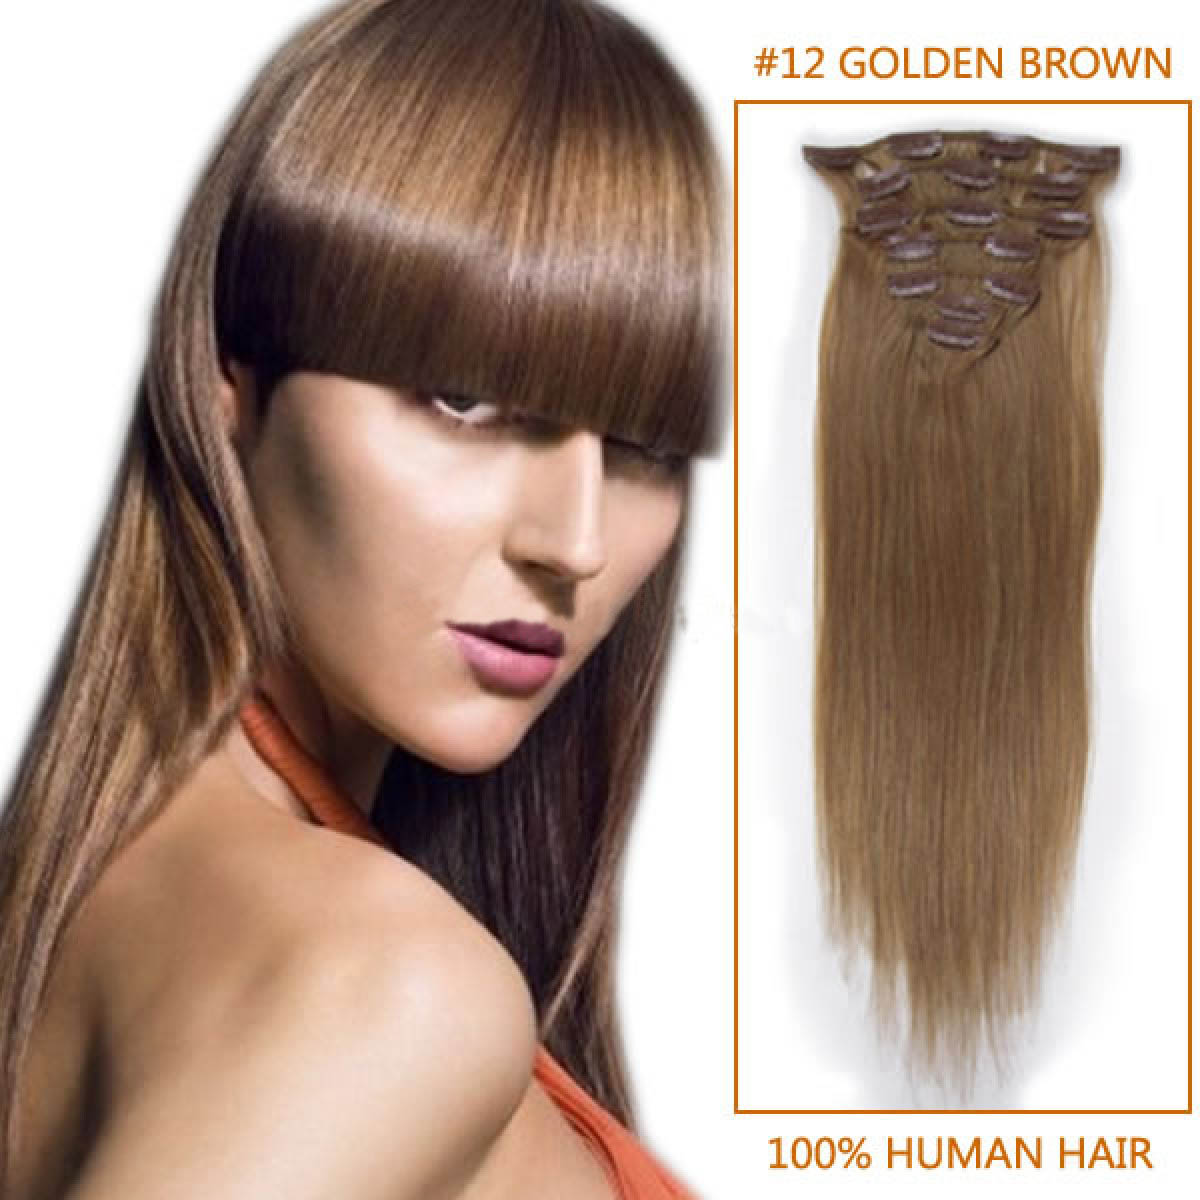 22 Inch 12 Golden Brown Clip In Remy Human Hair Extensions 9pcs